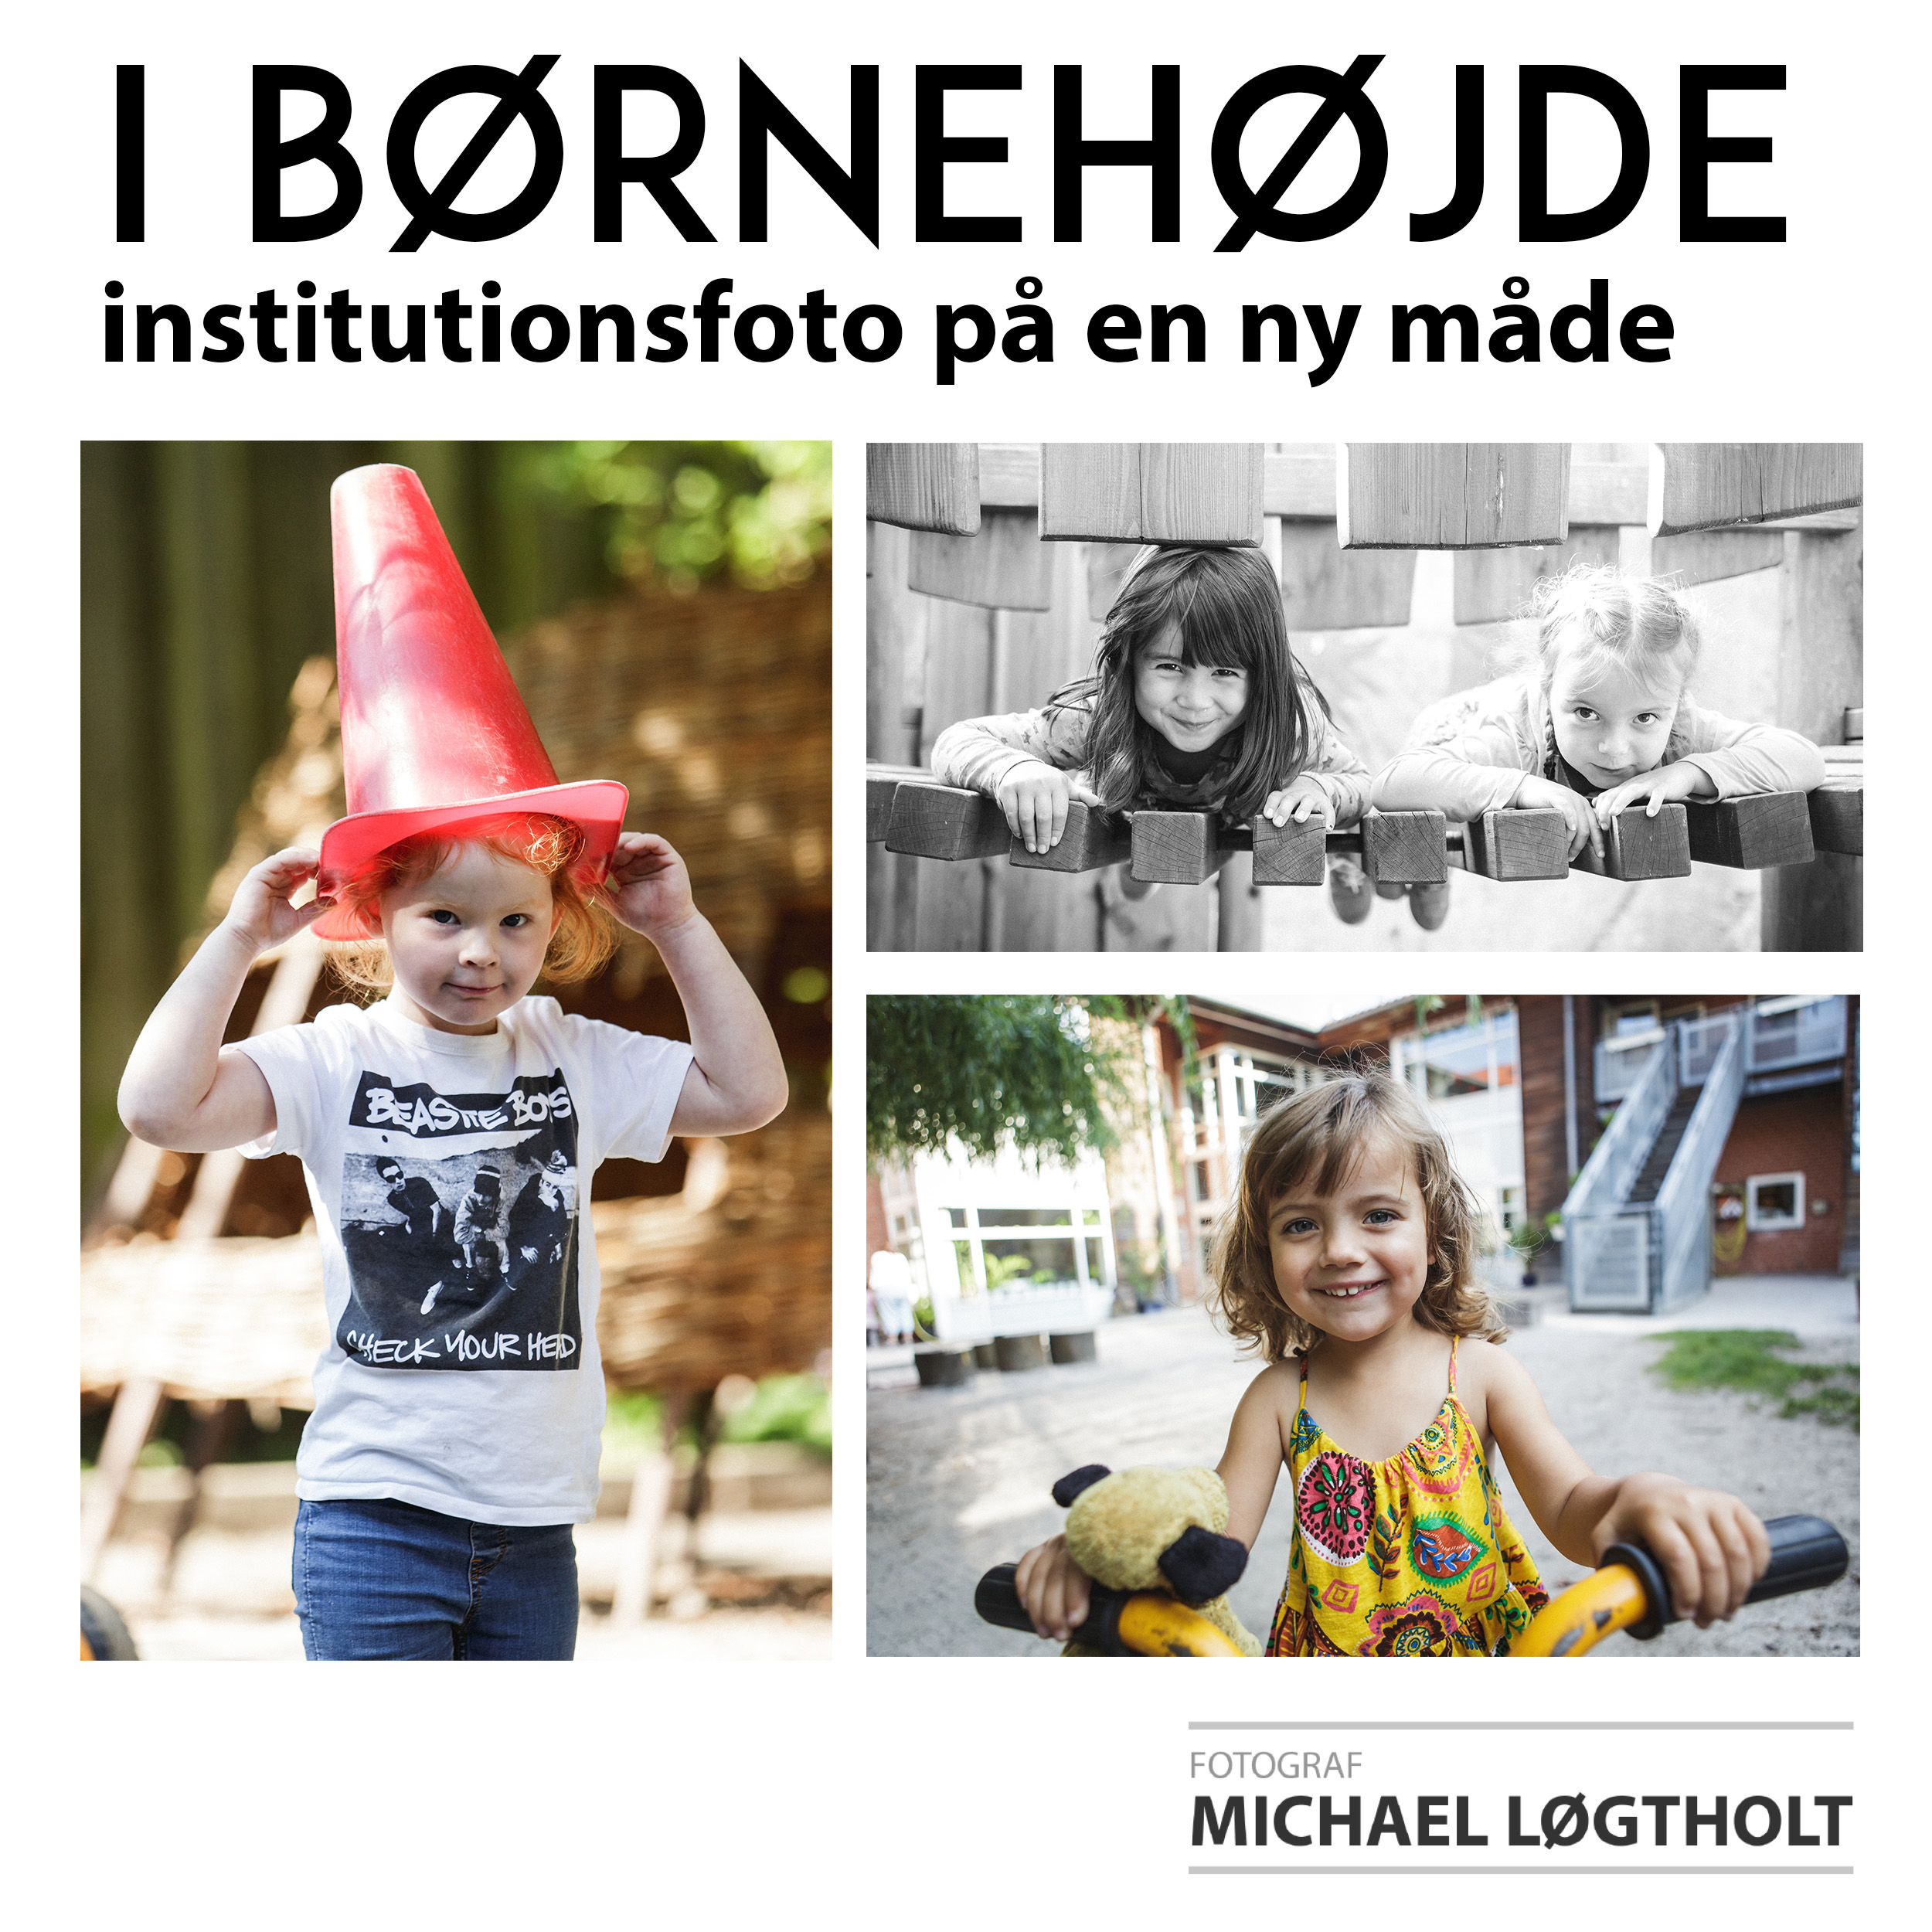 17 – Præsentation institutionsfoto